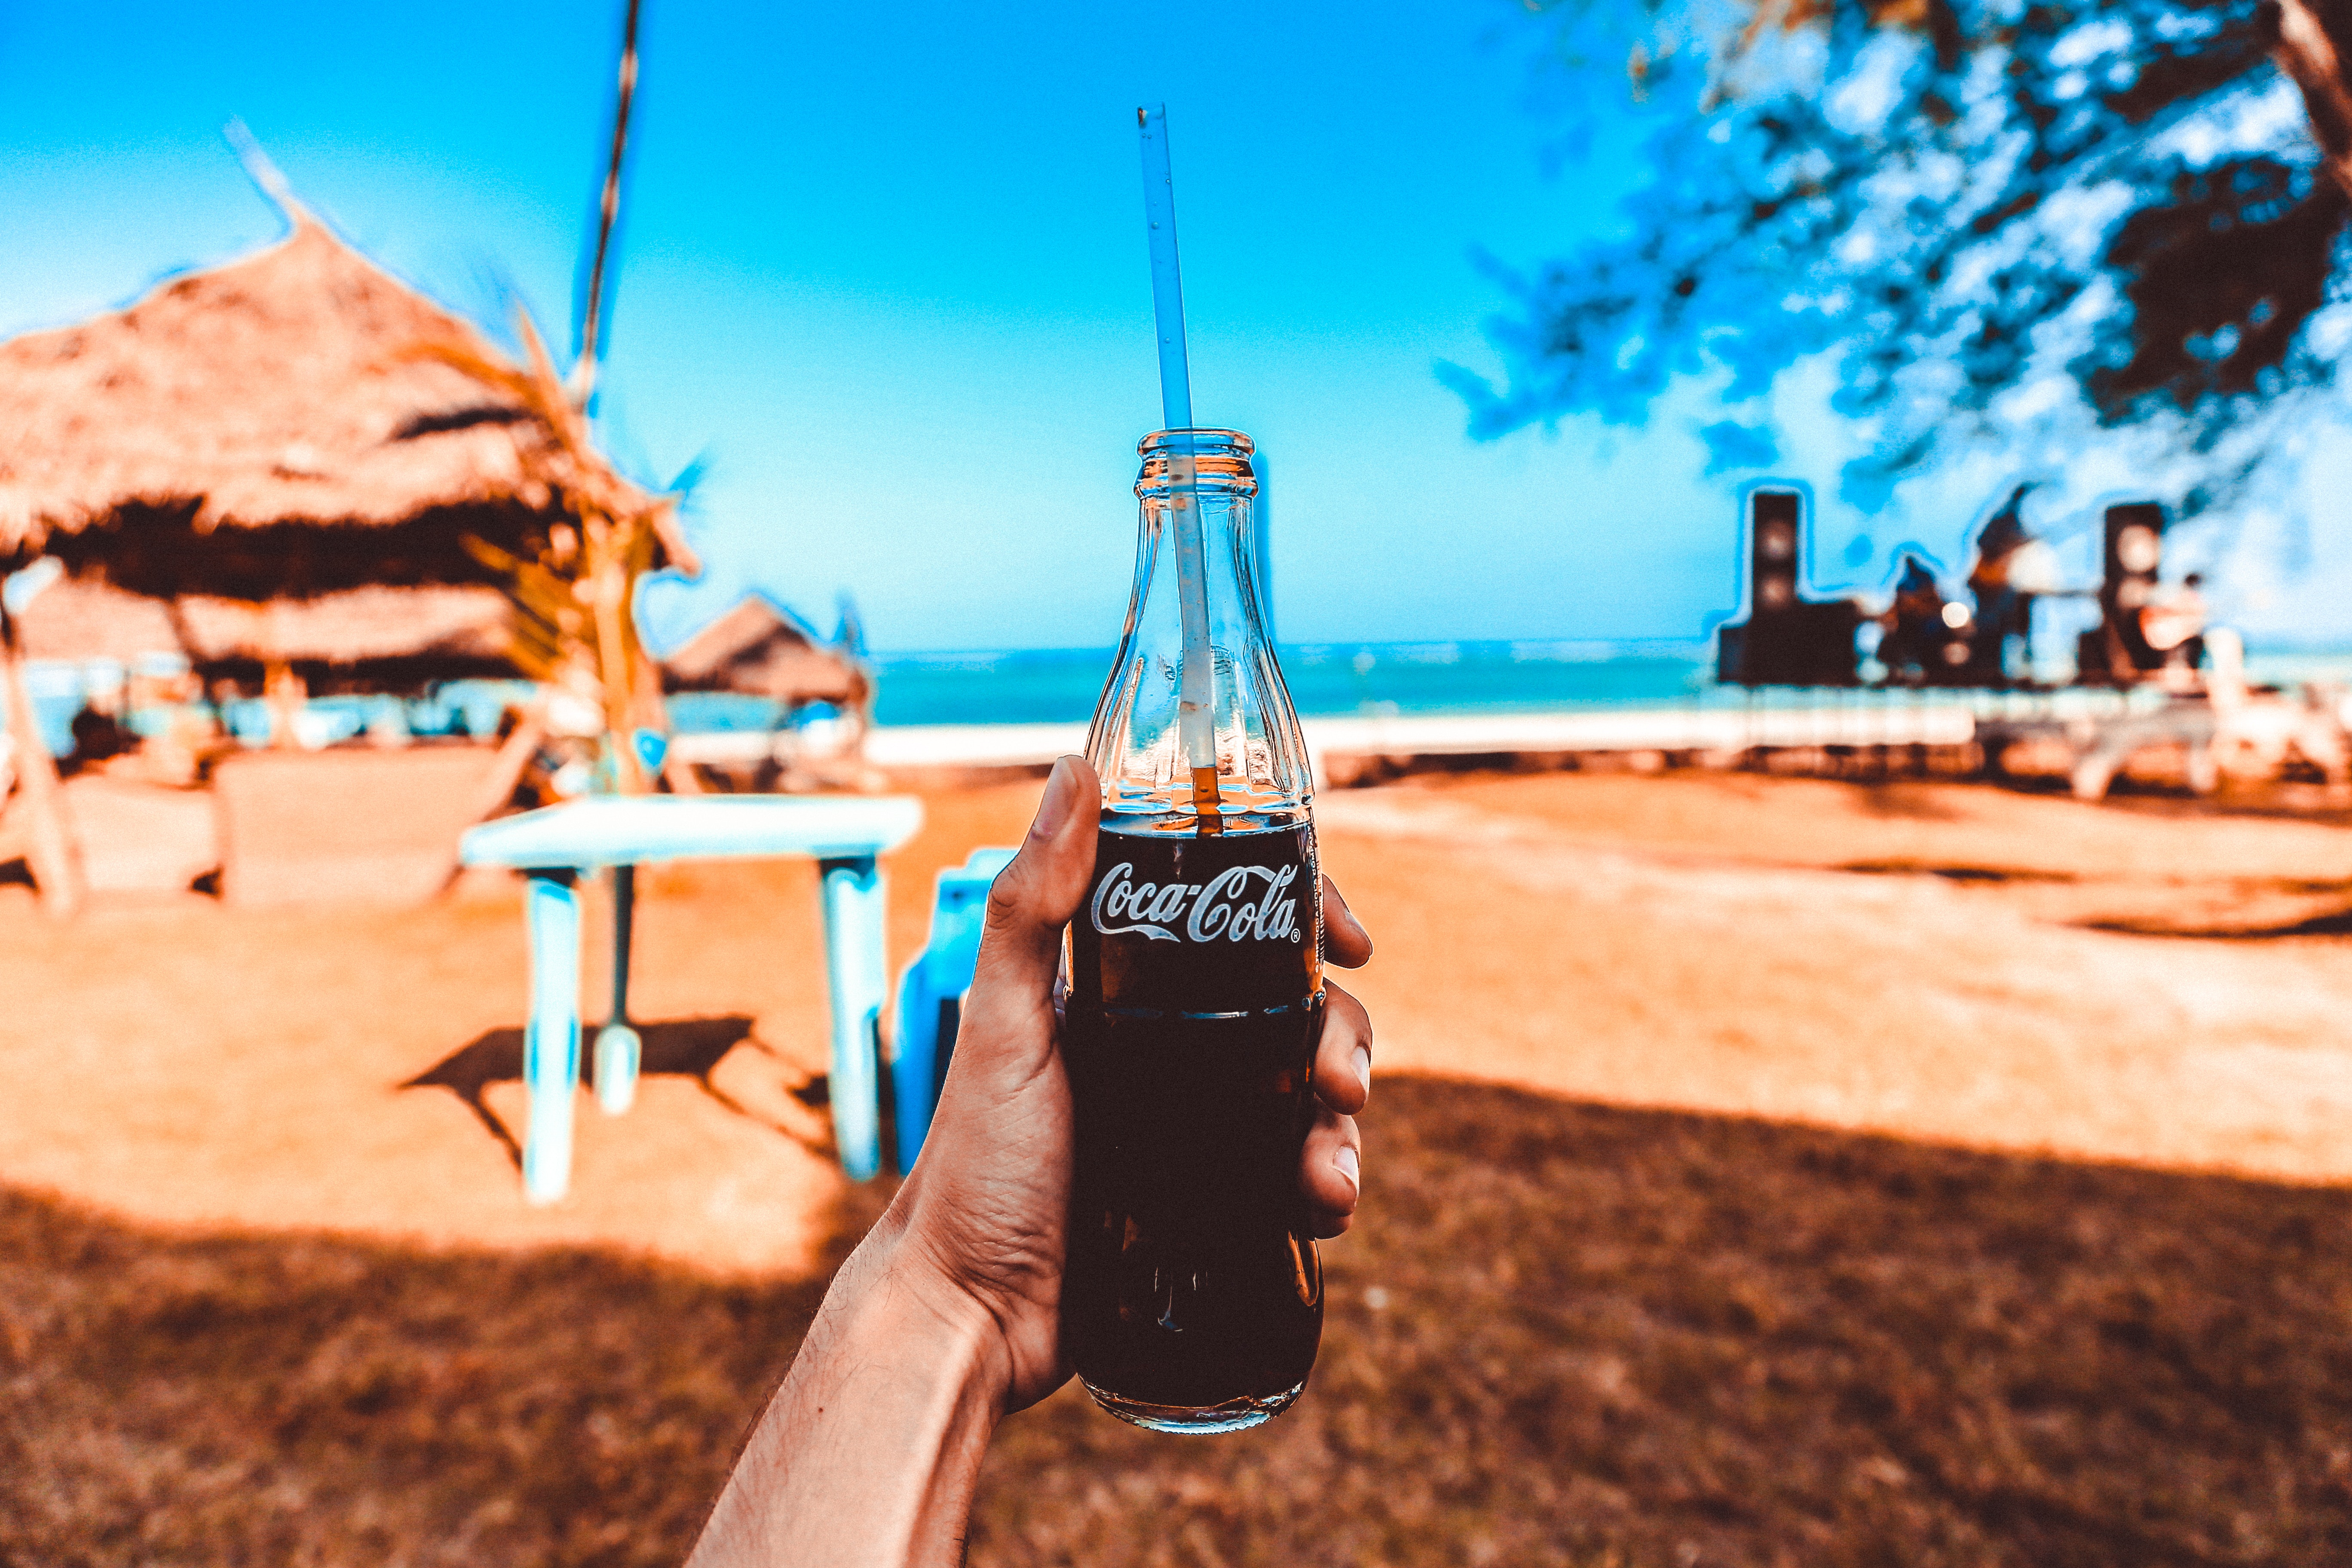 Person Holding Coca-cola Glass Bottle, Beach, Person, Tropical, Trees, HQ Photo